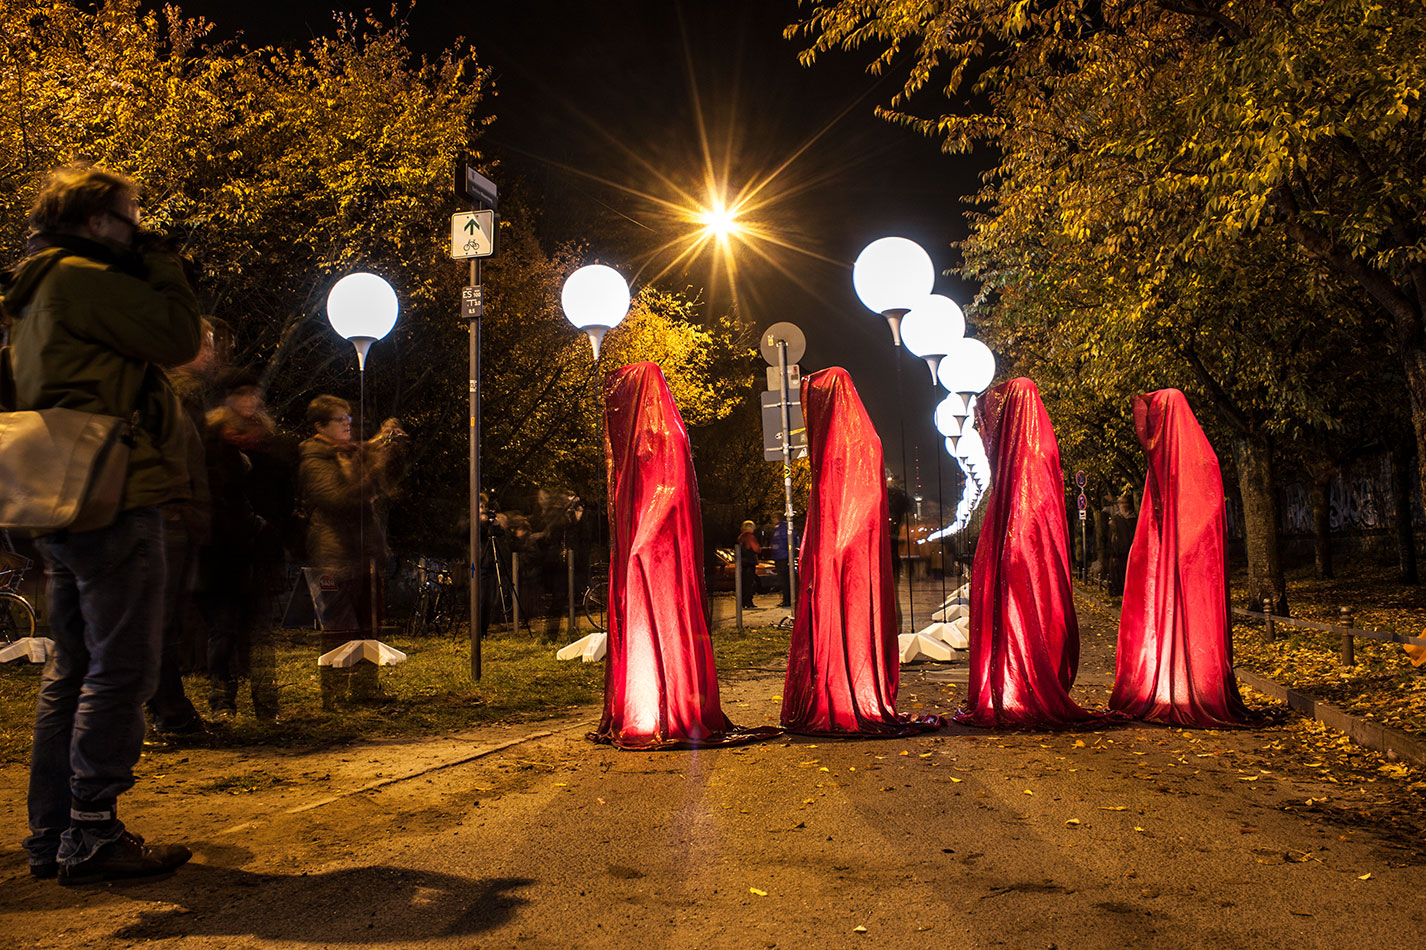 25-jears-wallfall-berlin-germany-contemporary-fine-art-show-arts-design-guardians-of-time-manfred-kili-kielnhofer-4314 - Kopie